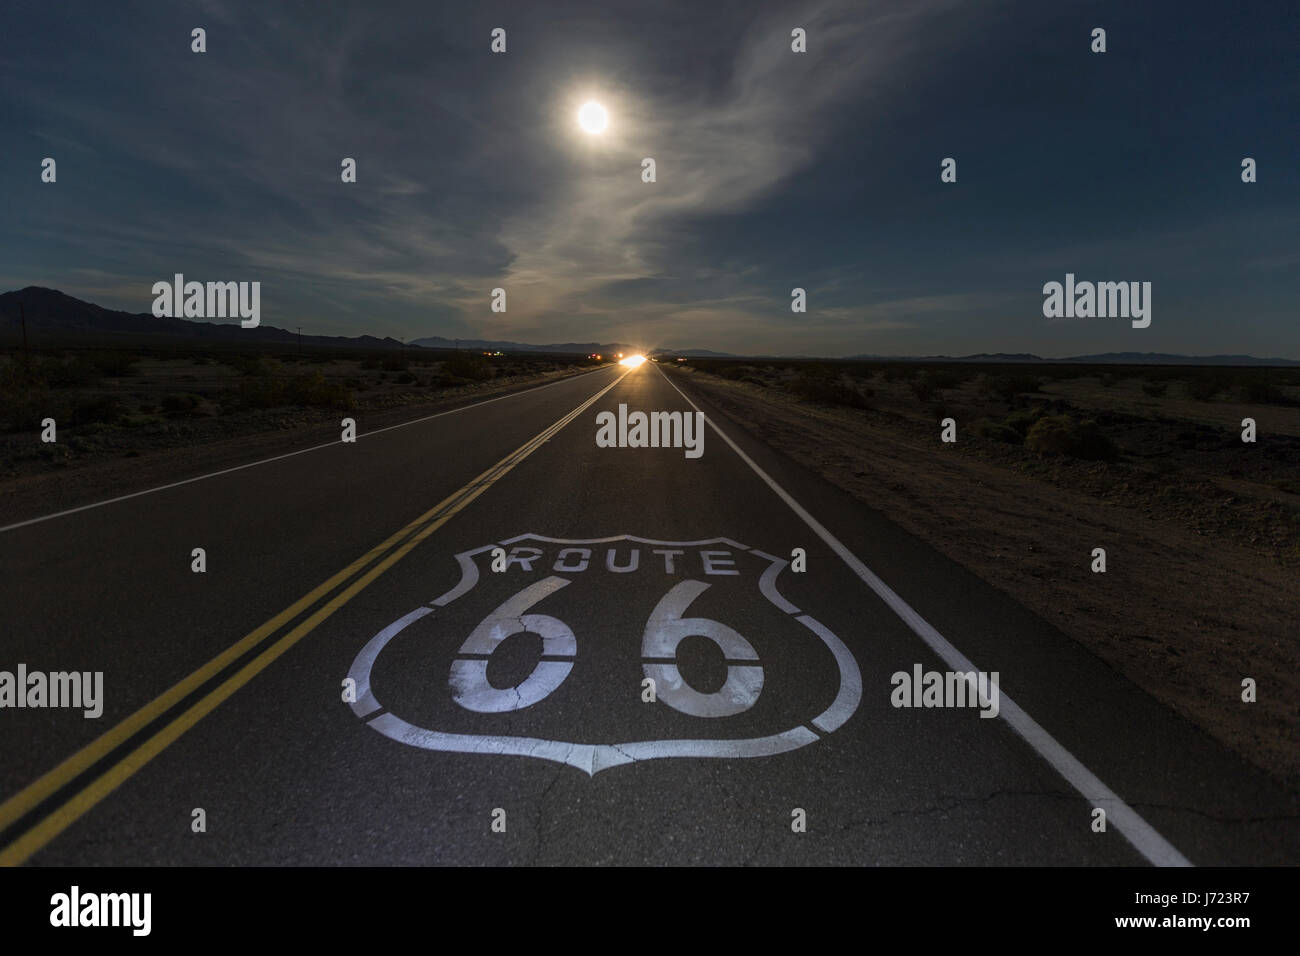 Route 66 sign with full moon and oncoming headlights in the California Mojave desert. - Stock Image